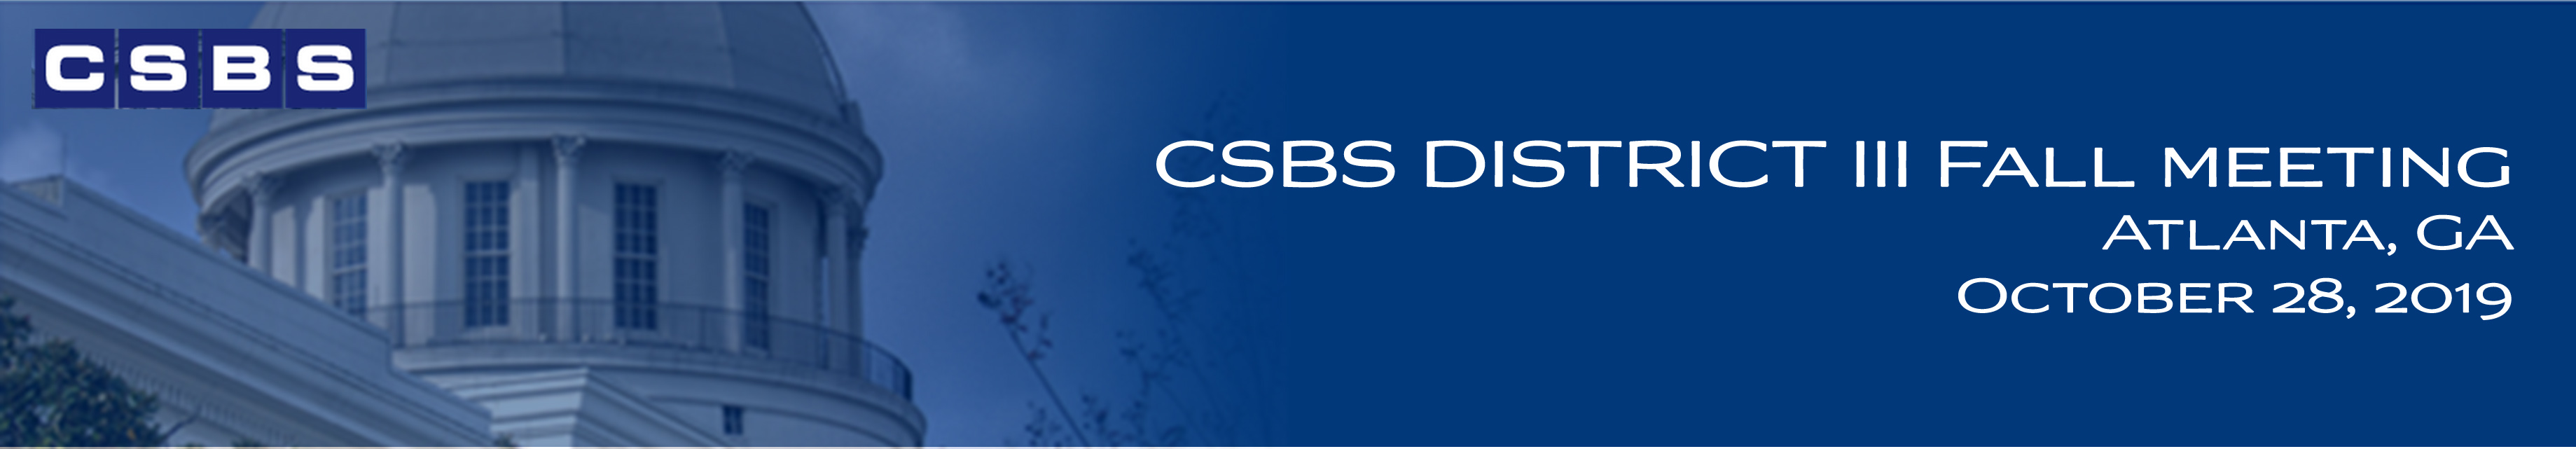 2019 CSBS District III Fall Meeting